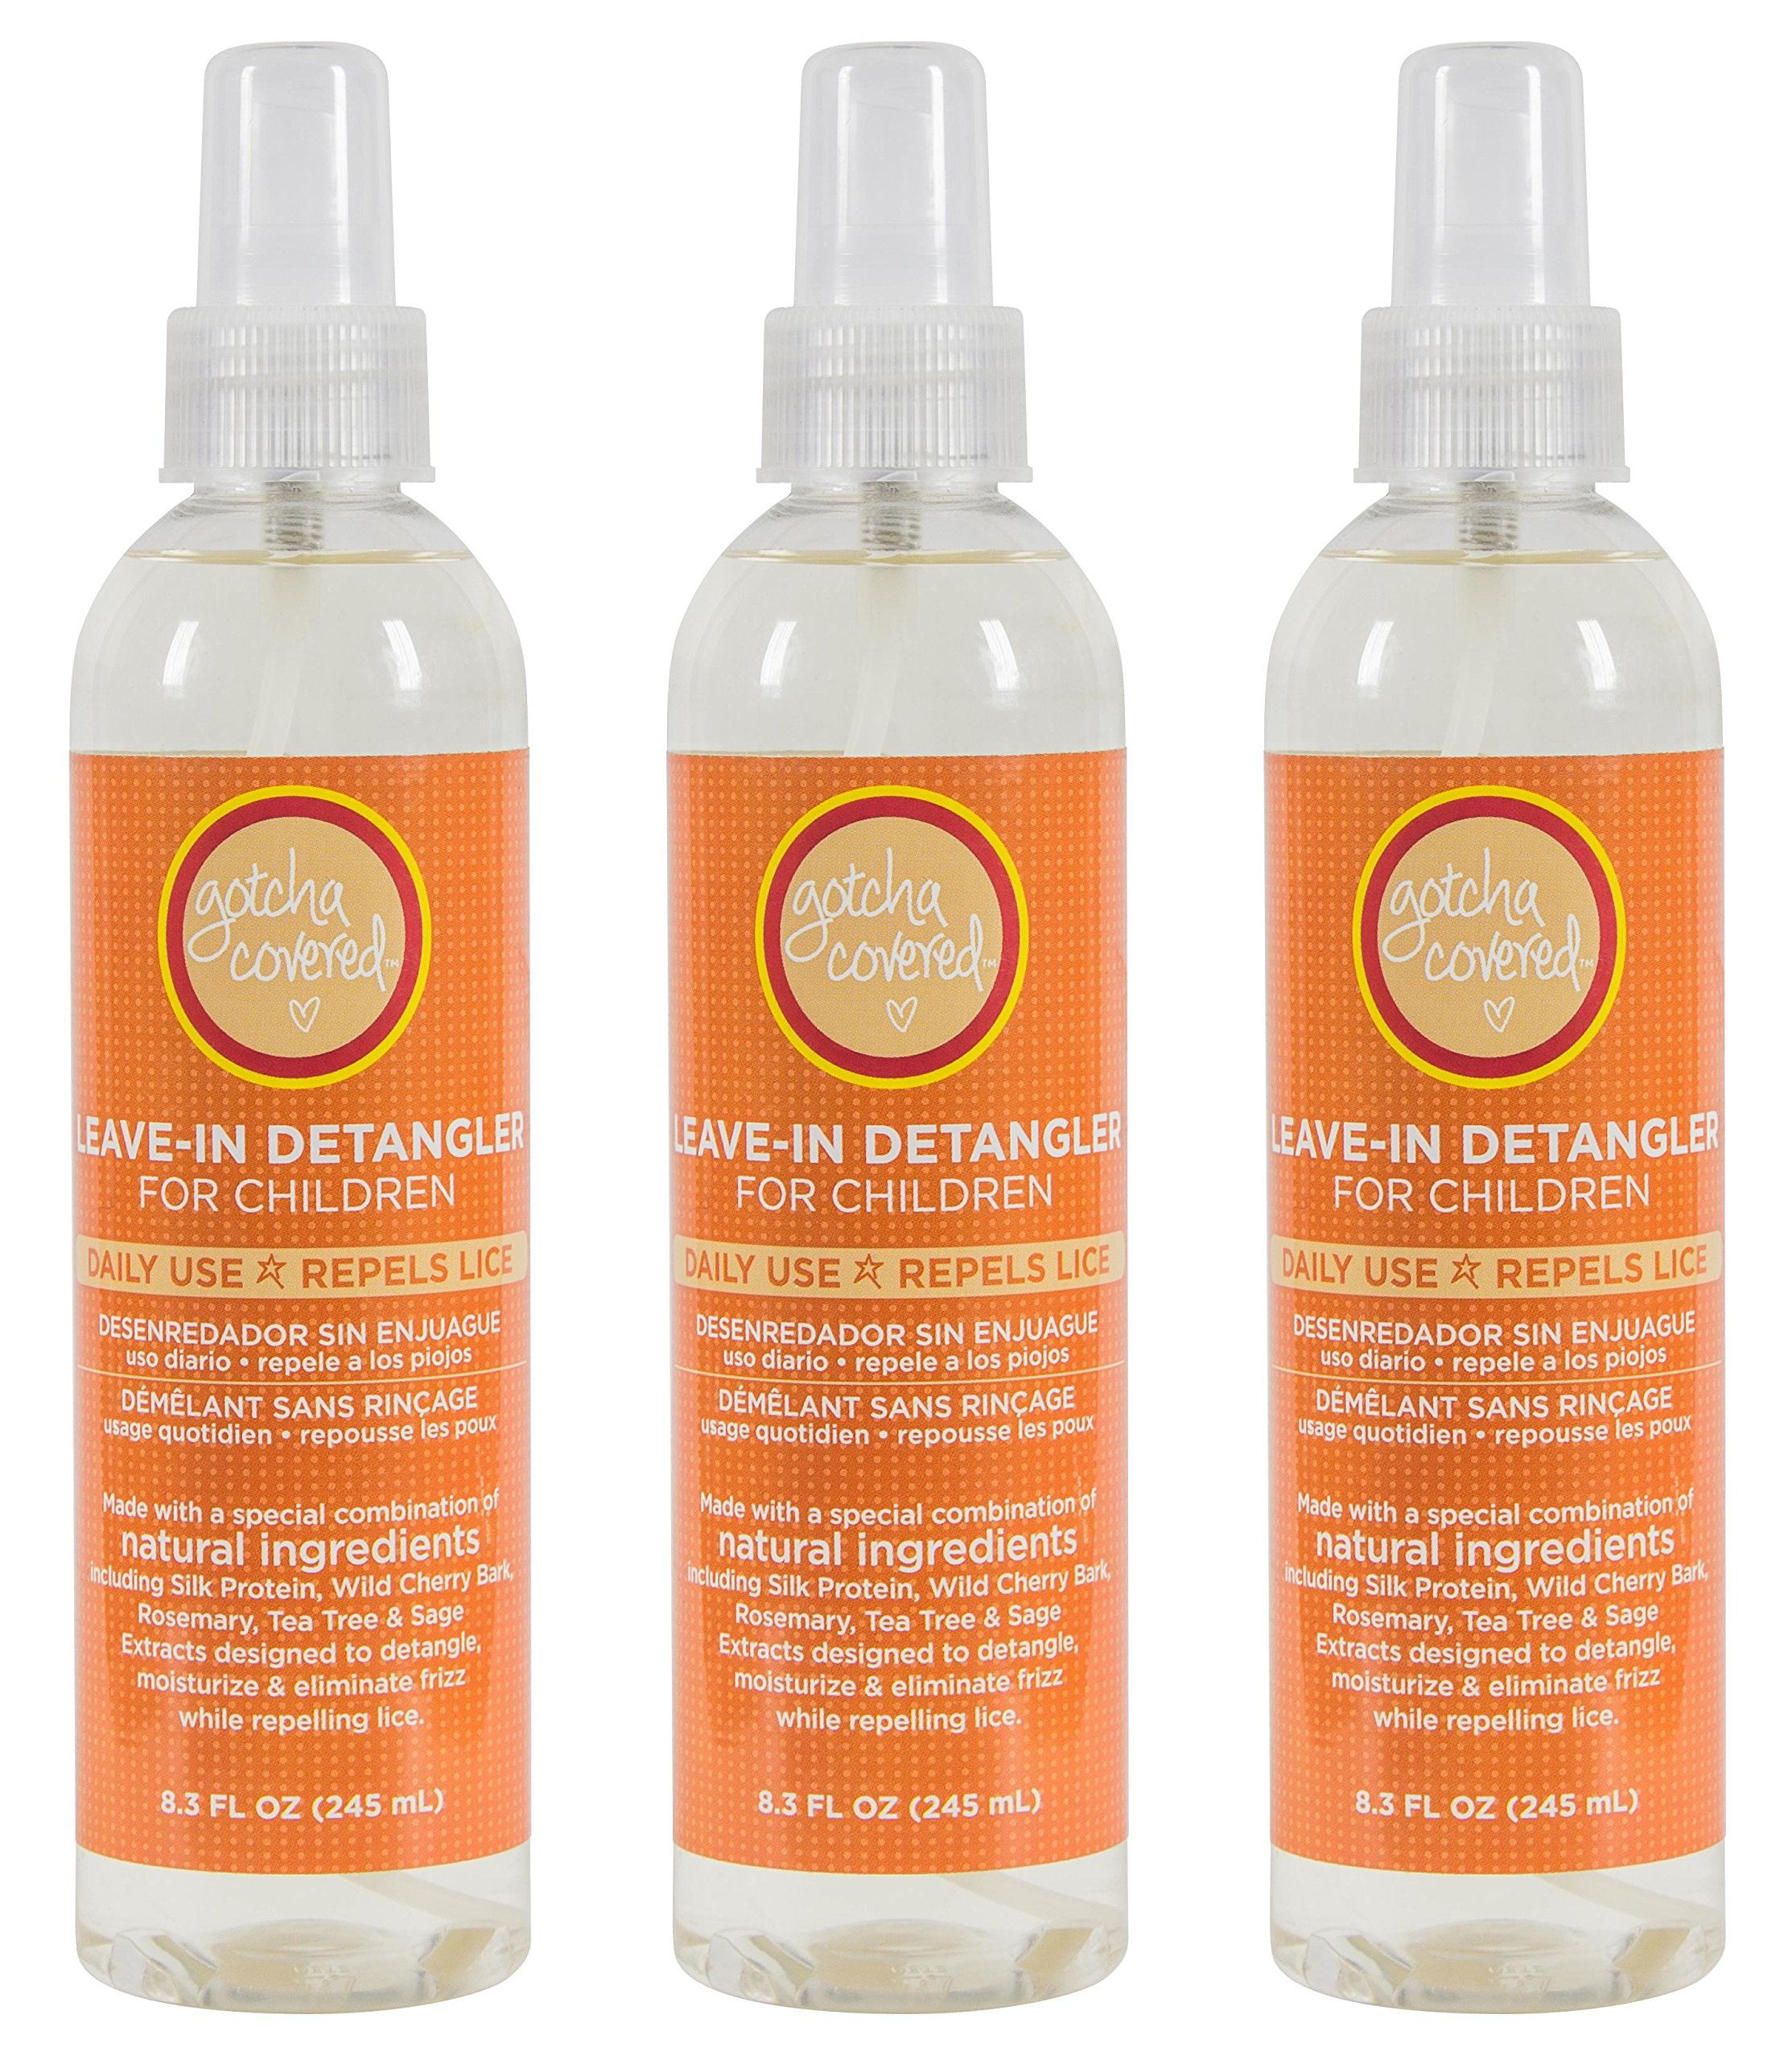 LICE PREVENTION HAIR DETANGLER | 3 Bottles 8.45 oz each 25.35 oz Total | All Natural With Lavender, Rosemary, Citronella, Tea Tree Essential Oils |